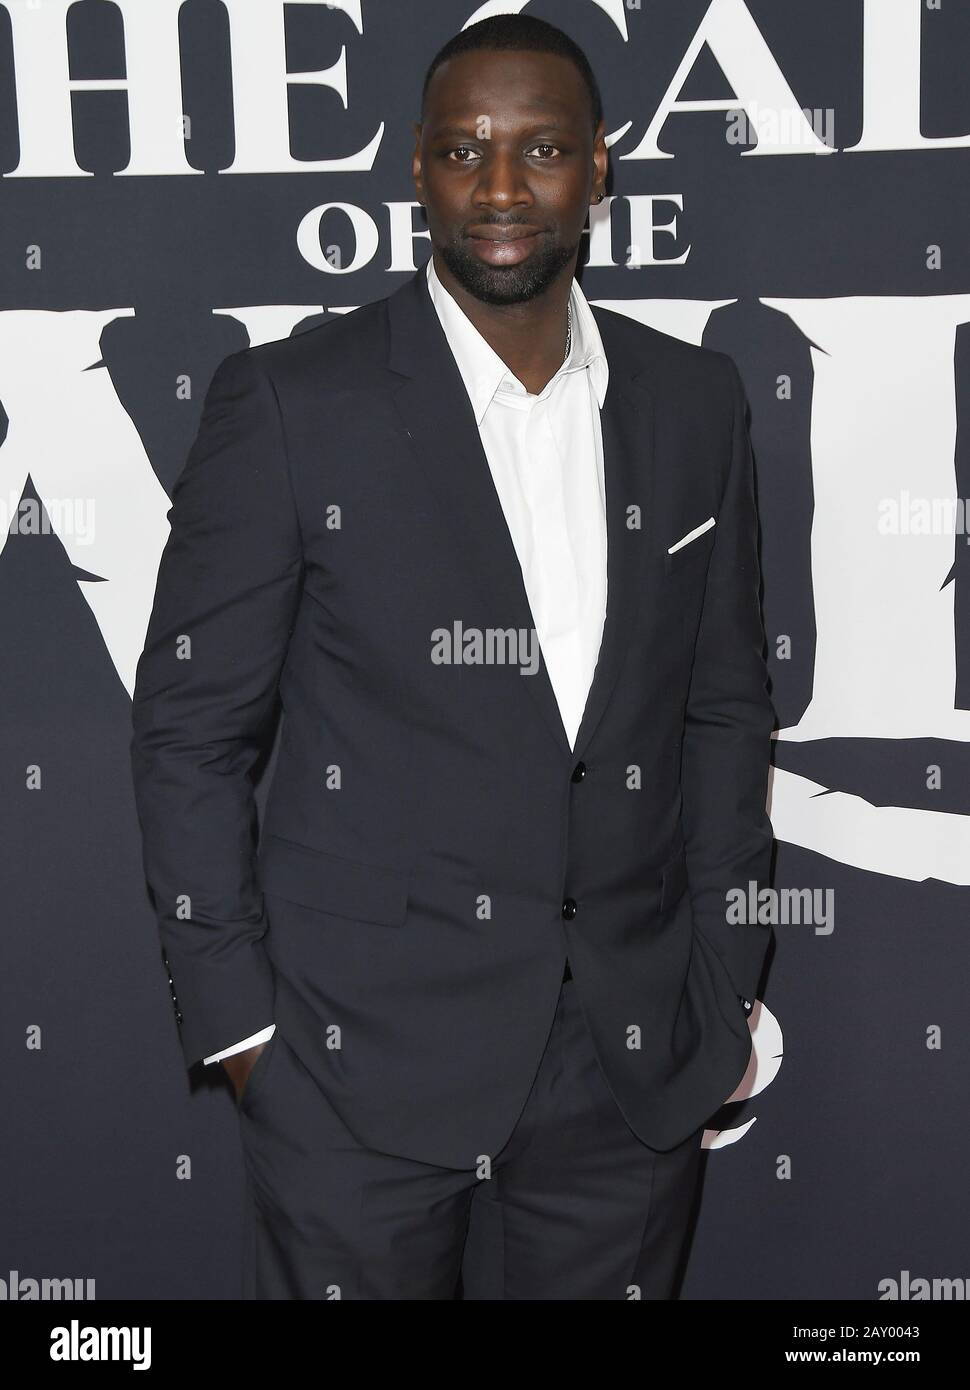 Los Angeles, USA. 13th Feb, 2020. Omar Sy arrives at the 20th Century Studios' THE CALL OF THE WILD Los Angeles Premiere held at the El Capitan Theatre in Hollywood, CA on Thursday, ?February 13, 2020. (Photo By Sthanlee B. Mirador/Sipa USA) Credit: Sipa USA/Alamy Live News Stock Photo